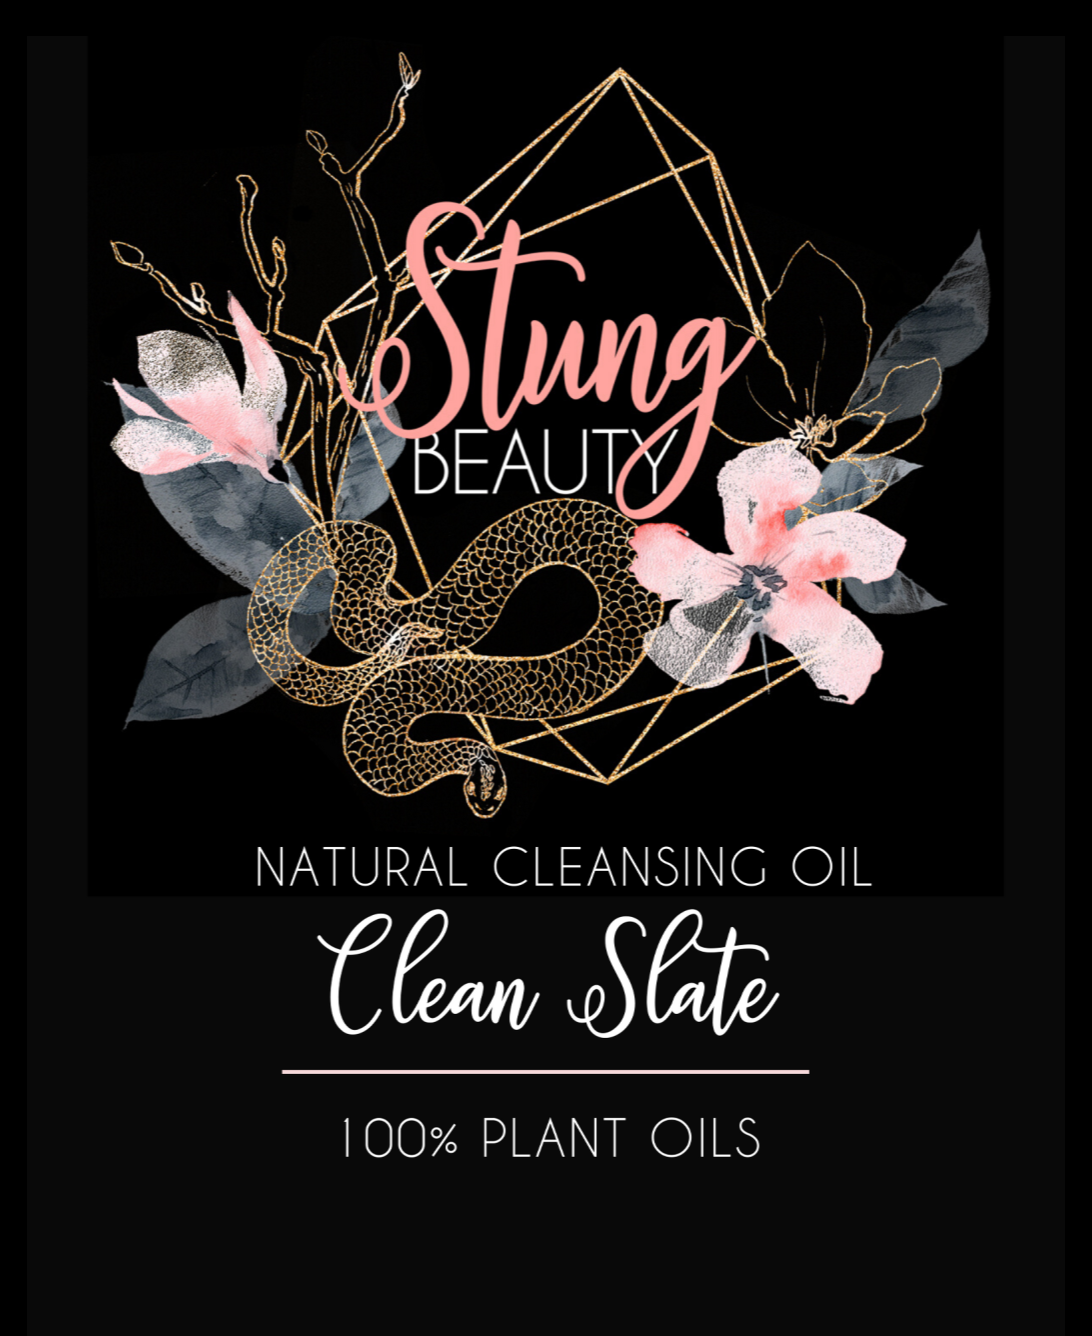 Clean Slate Cleansing Oil - StungBeauty.Co